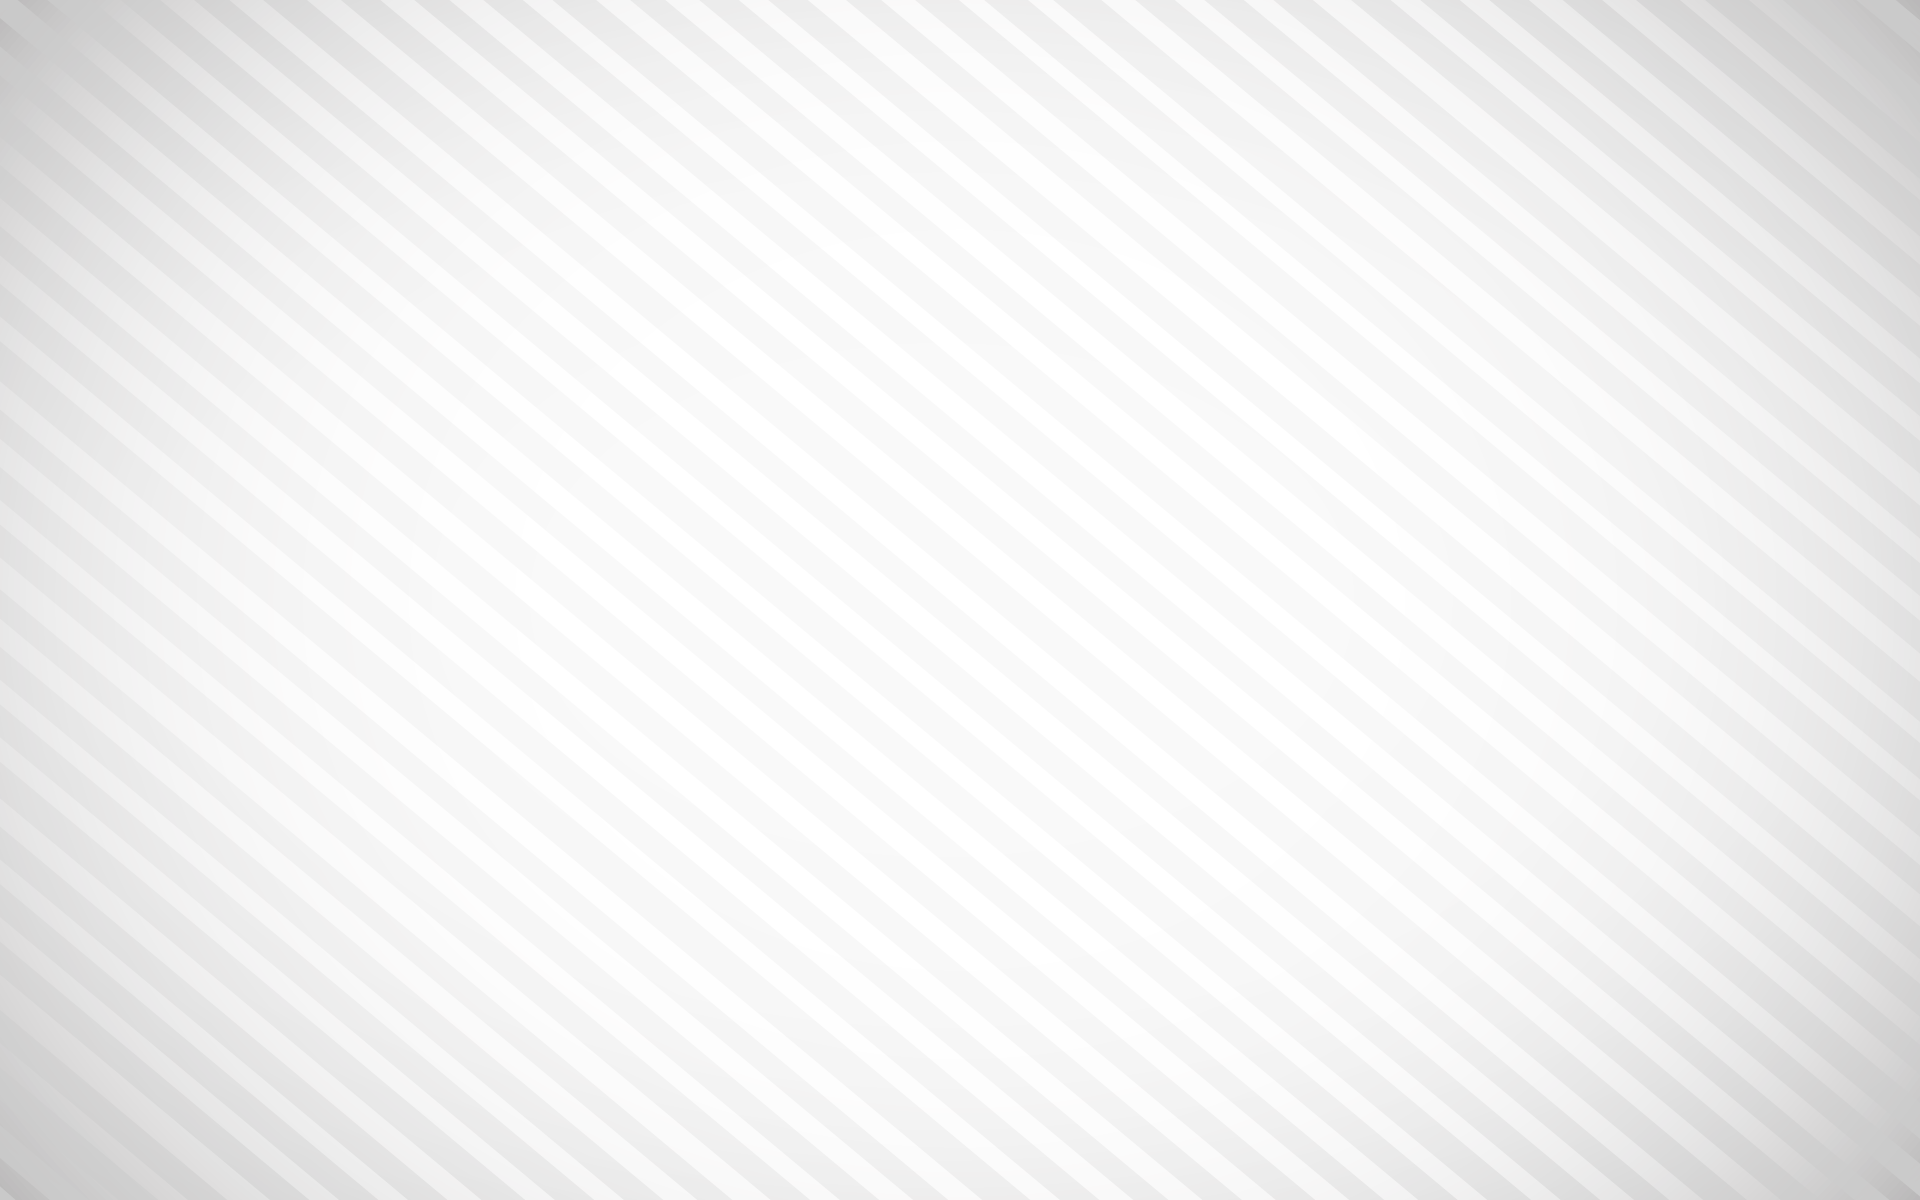 White HD Wallpaper